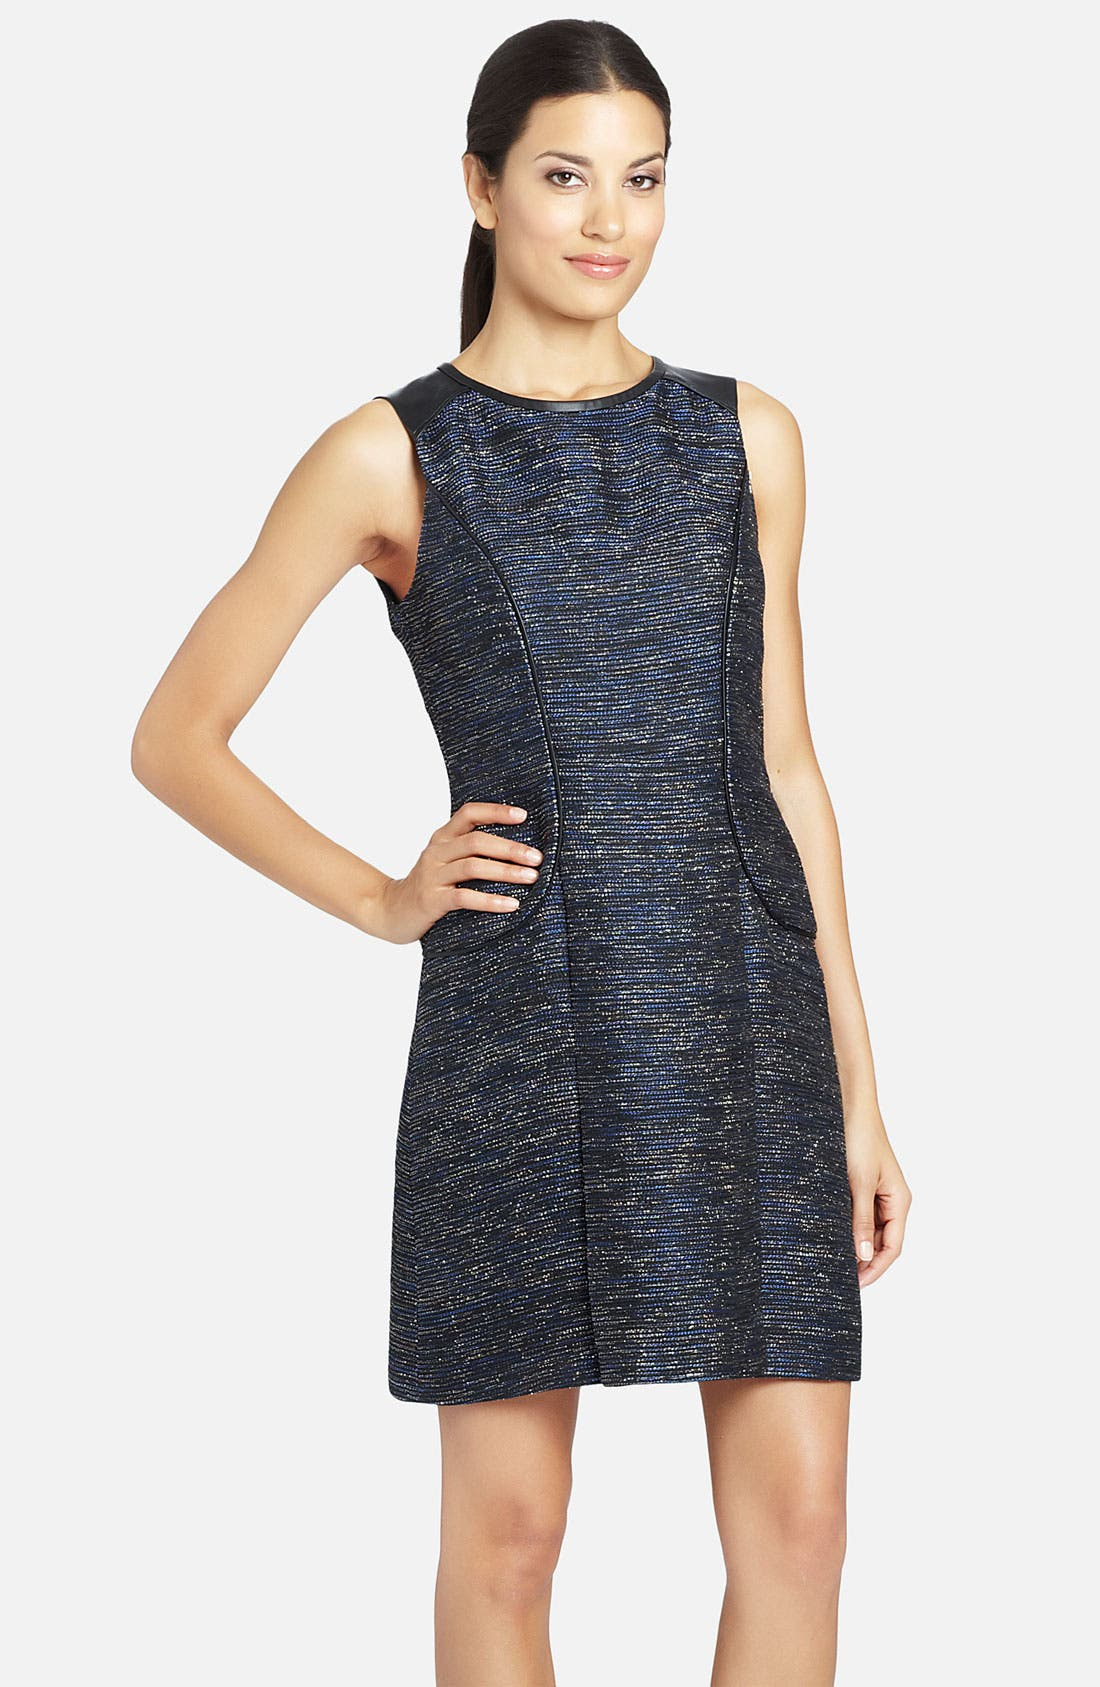 Alternate Image 1 Selected - Cynthia Steffe 'Blair' Faux-Leather Piping Metallic Woven Dress